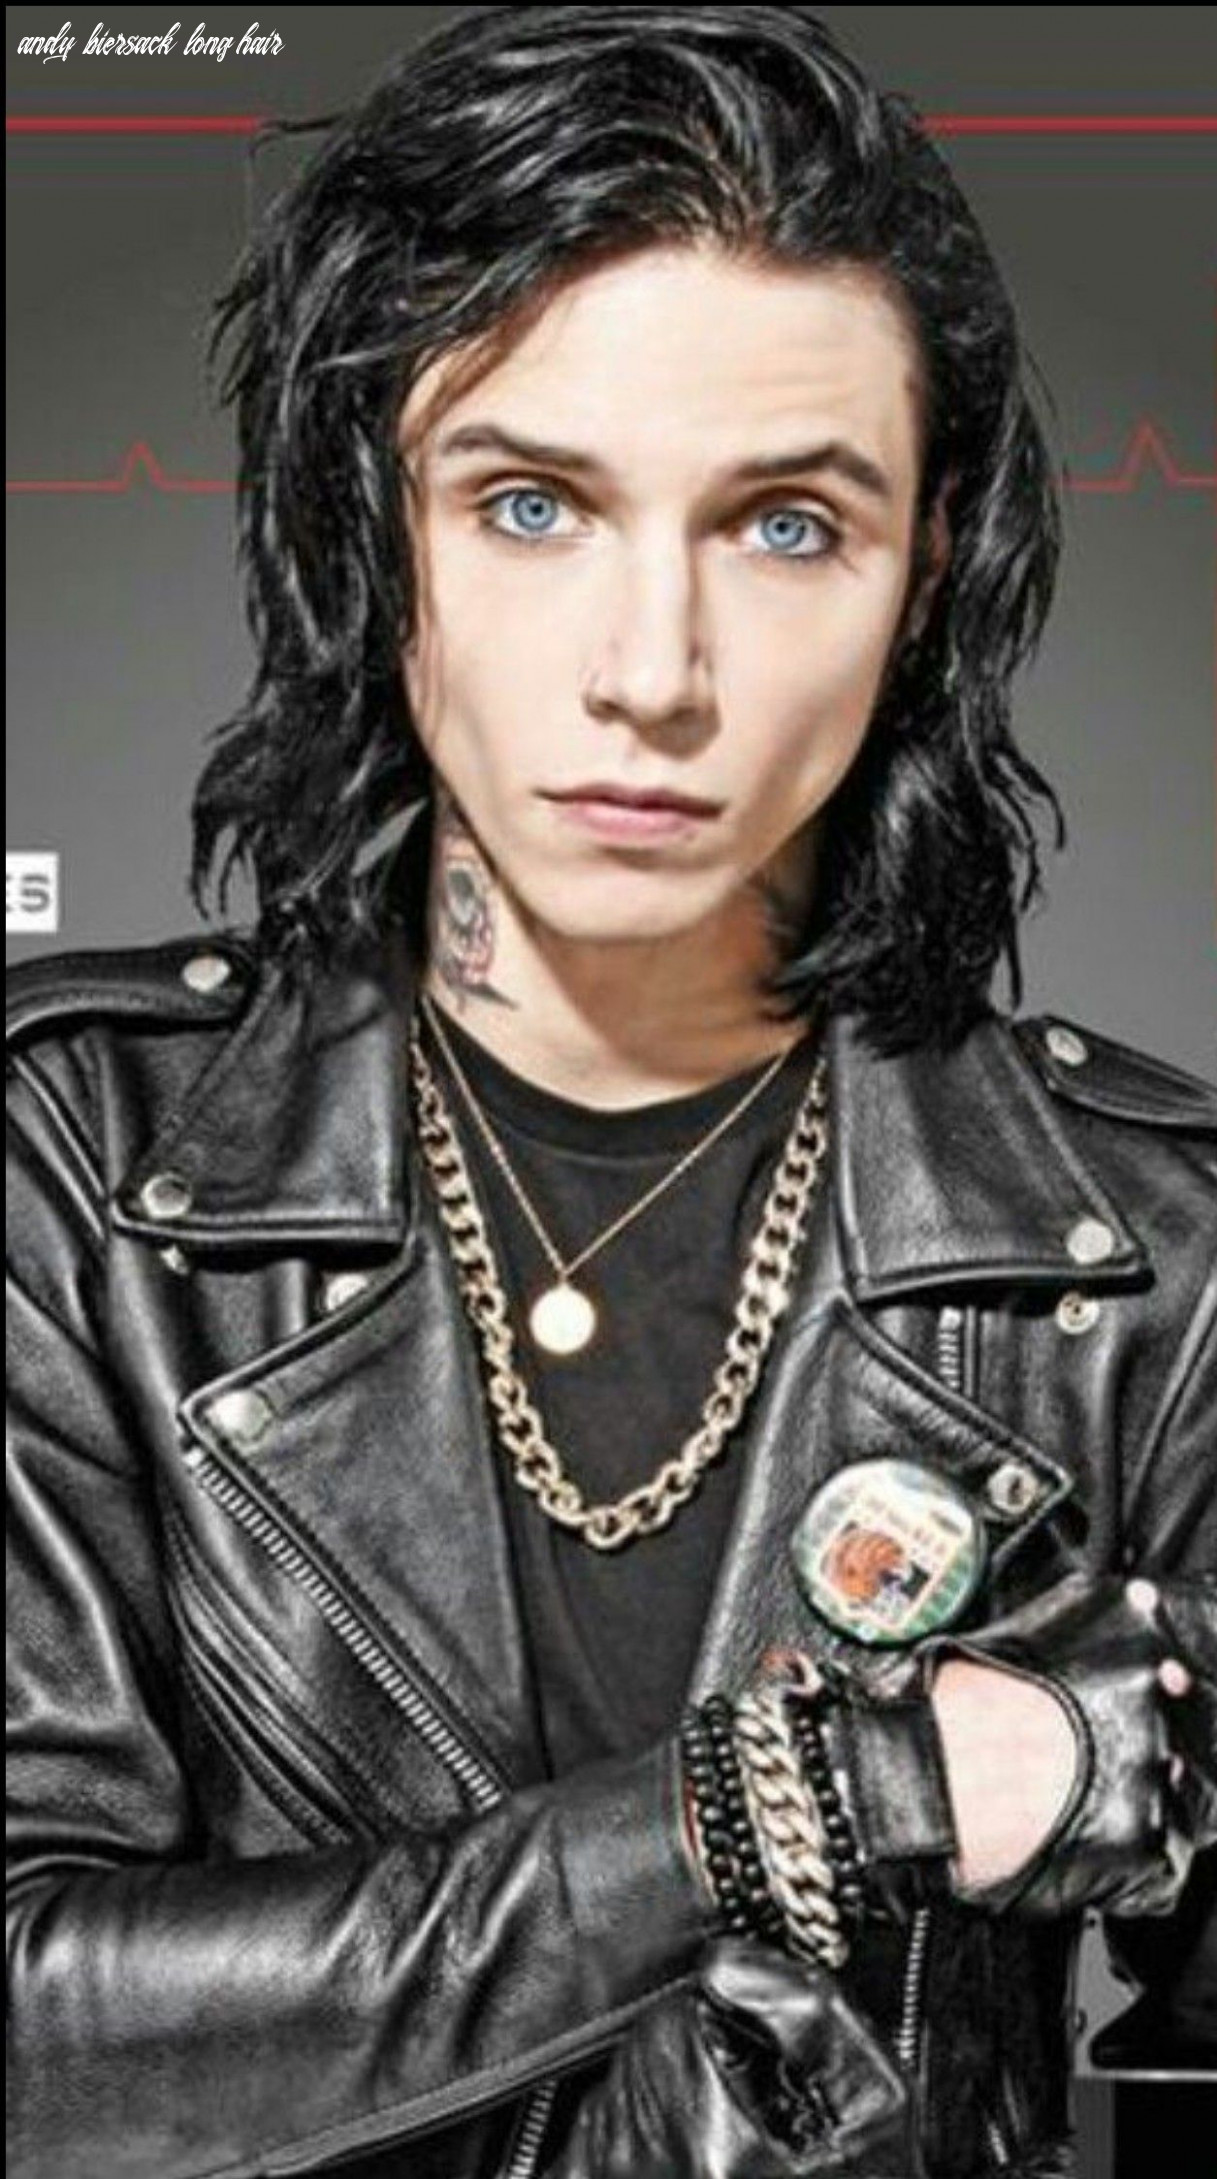 One of my favorite pictures!! | bvb, coverboy, bvb fan andy biersack long hair